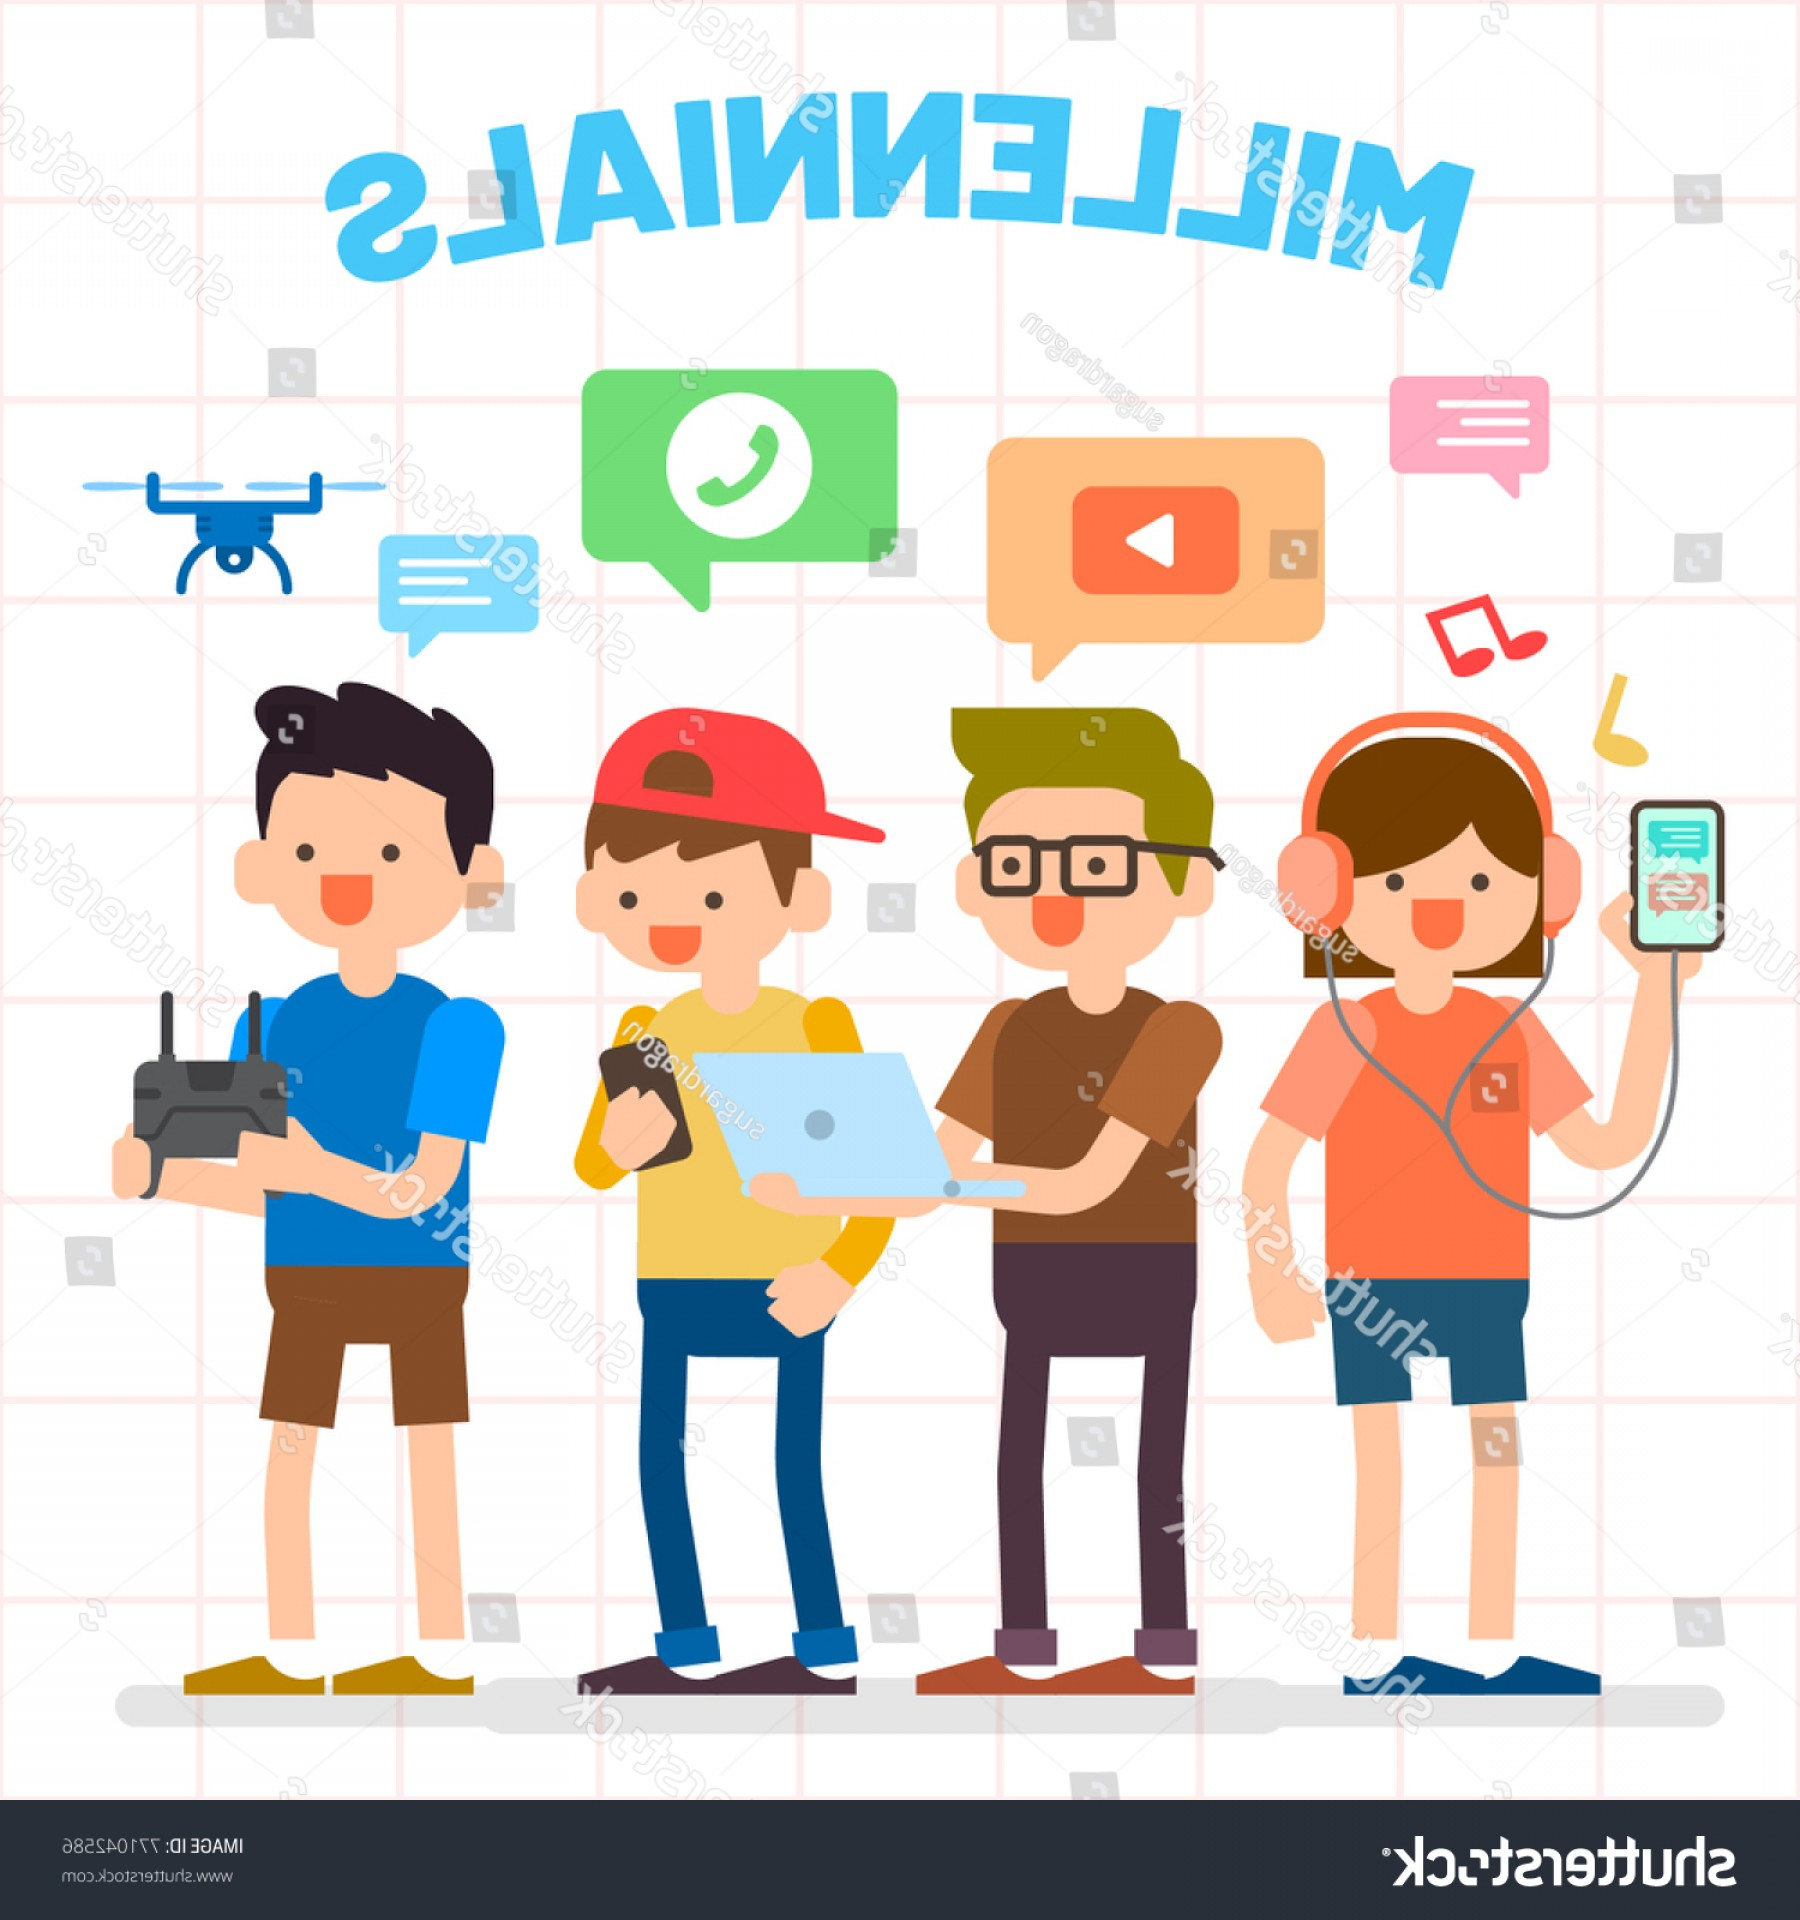 Millennial Vector: Millennials Illustration Group People Generation Y